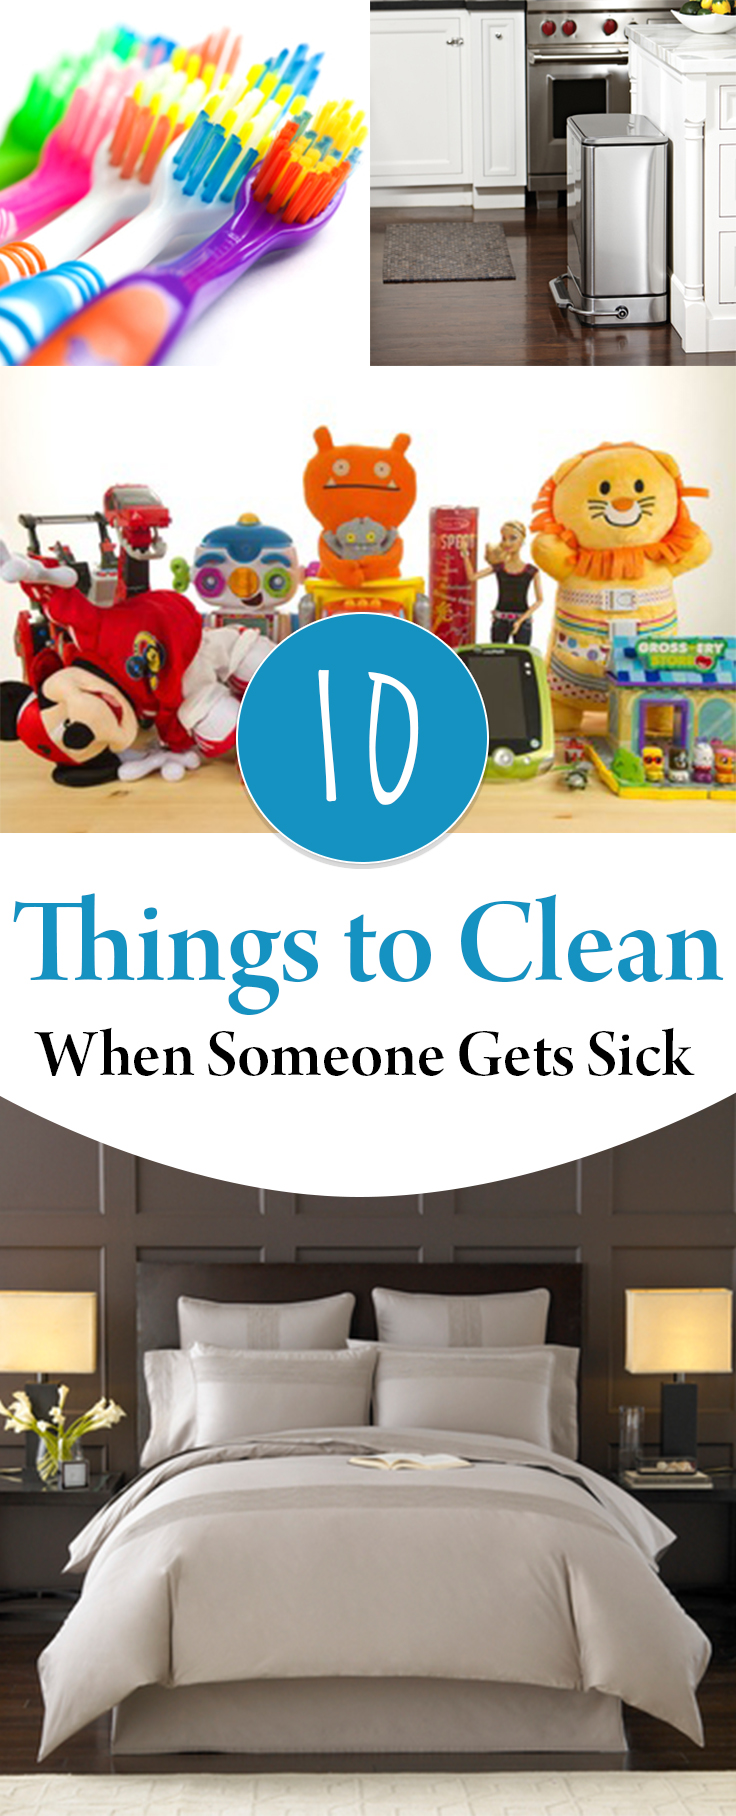 10 Things to Clean When Someone Gets Sick (1)